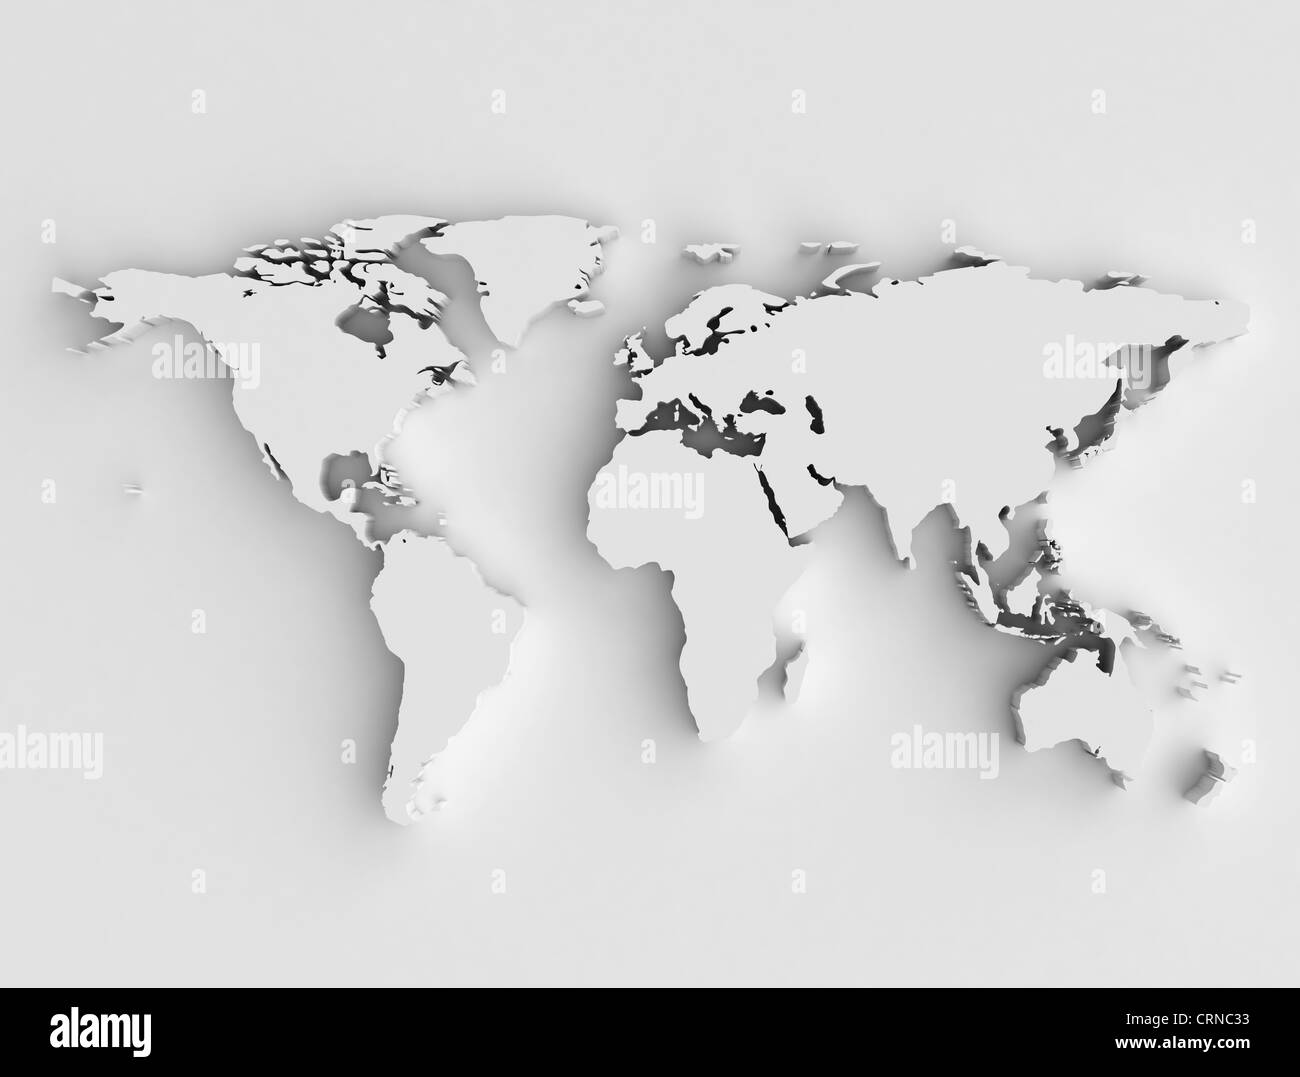 World map 3d high resolution stock photo 49028311 alamy world map 3d high resolution gumiabroncs Image collections